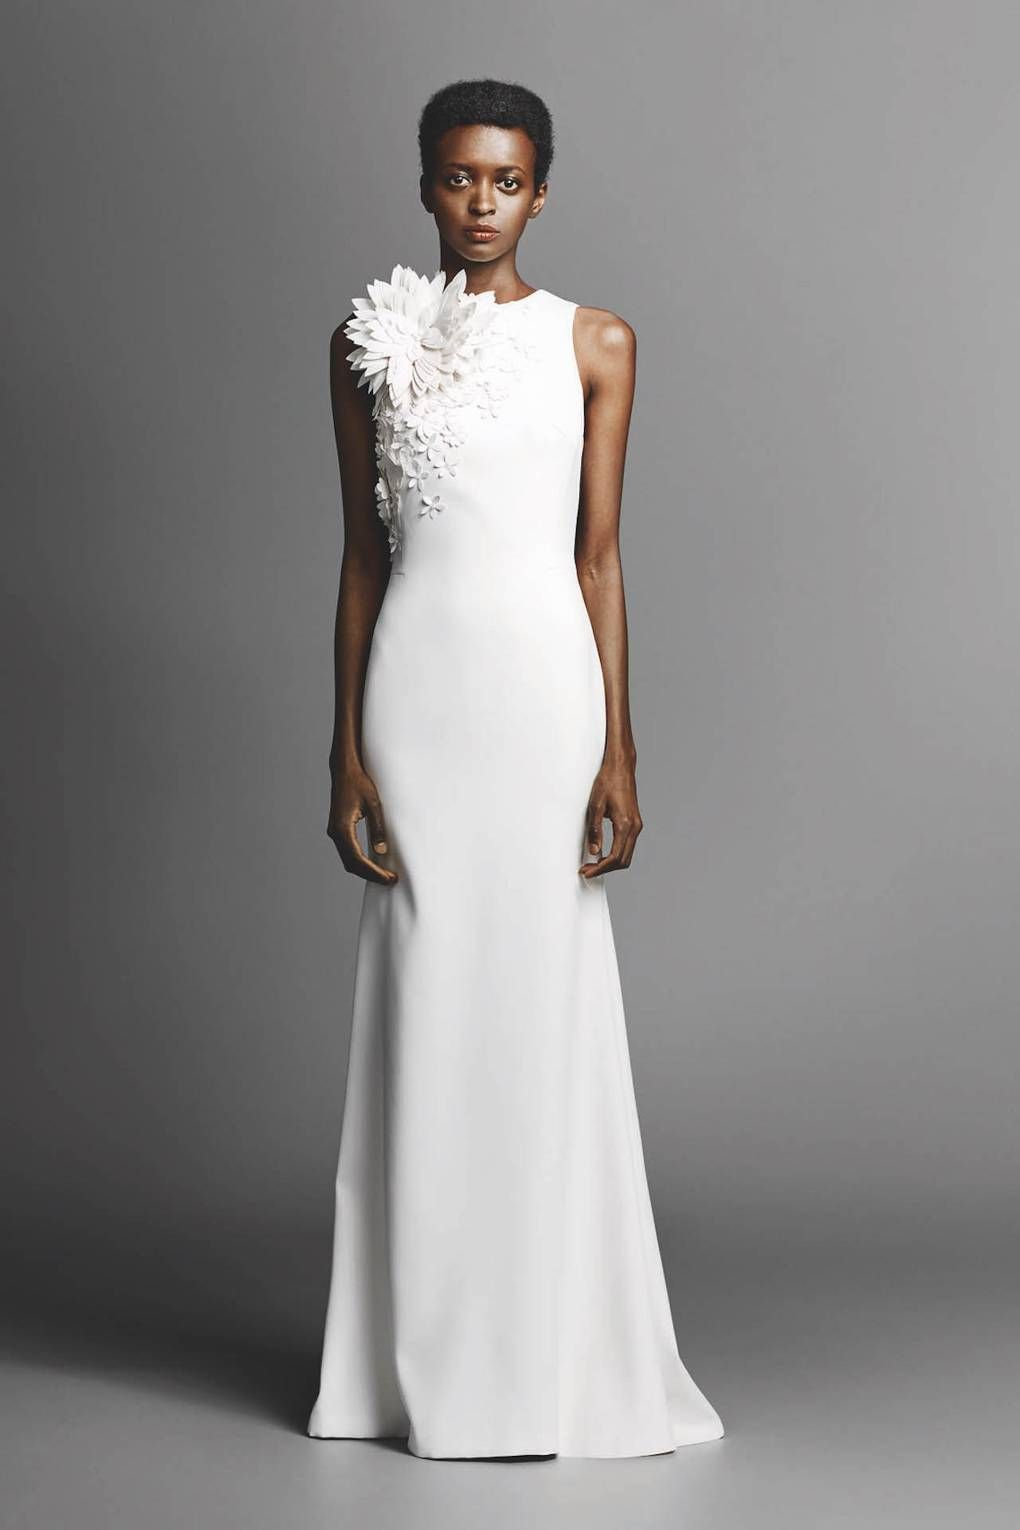 unusual wedding dresses for the nontraditional bride in